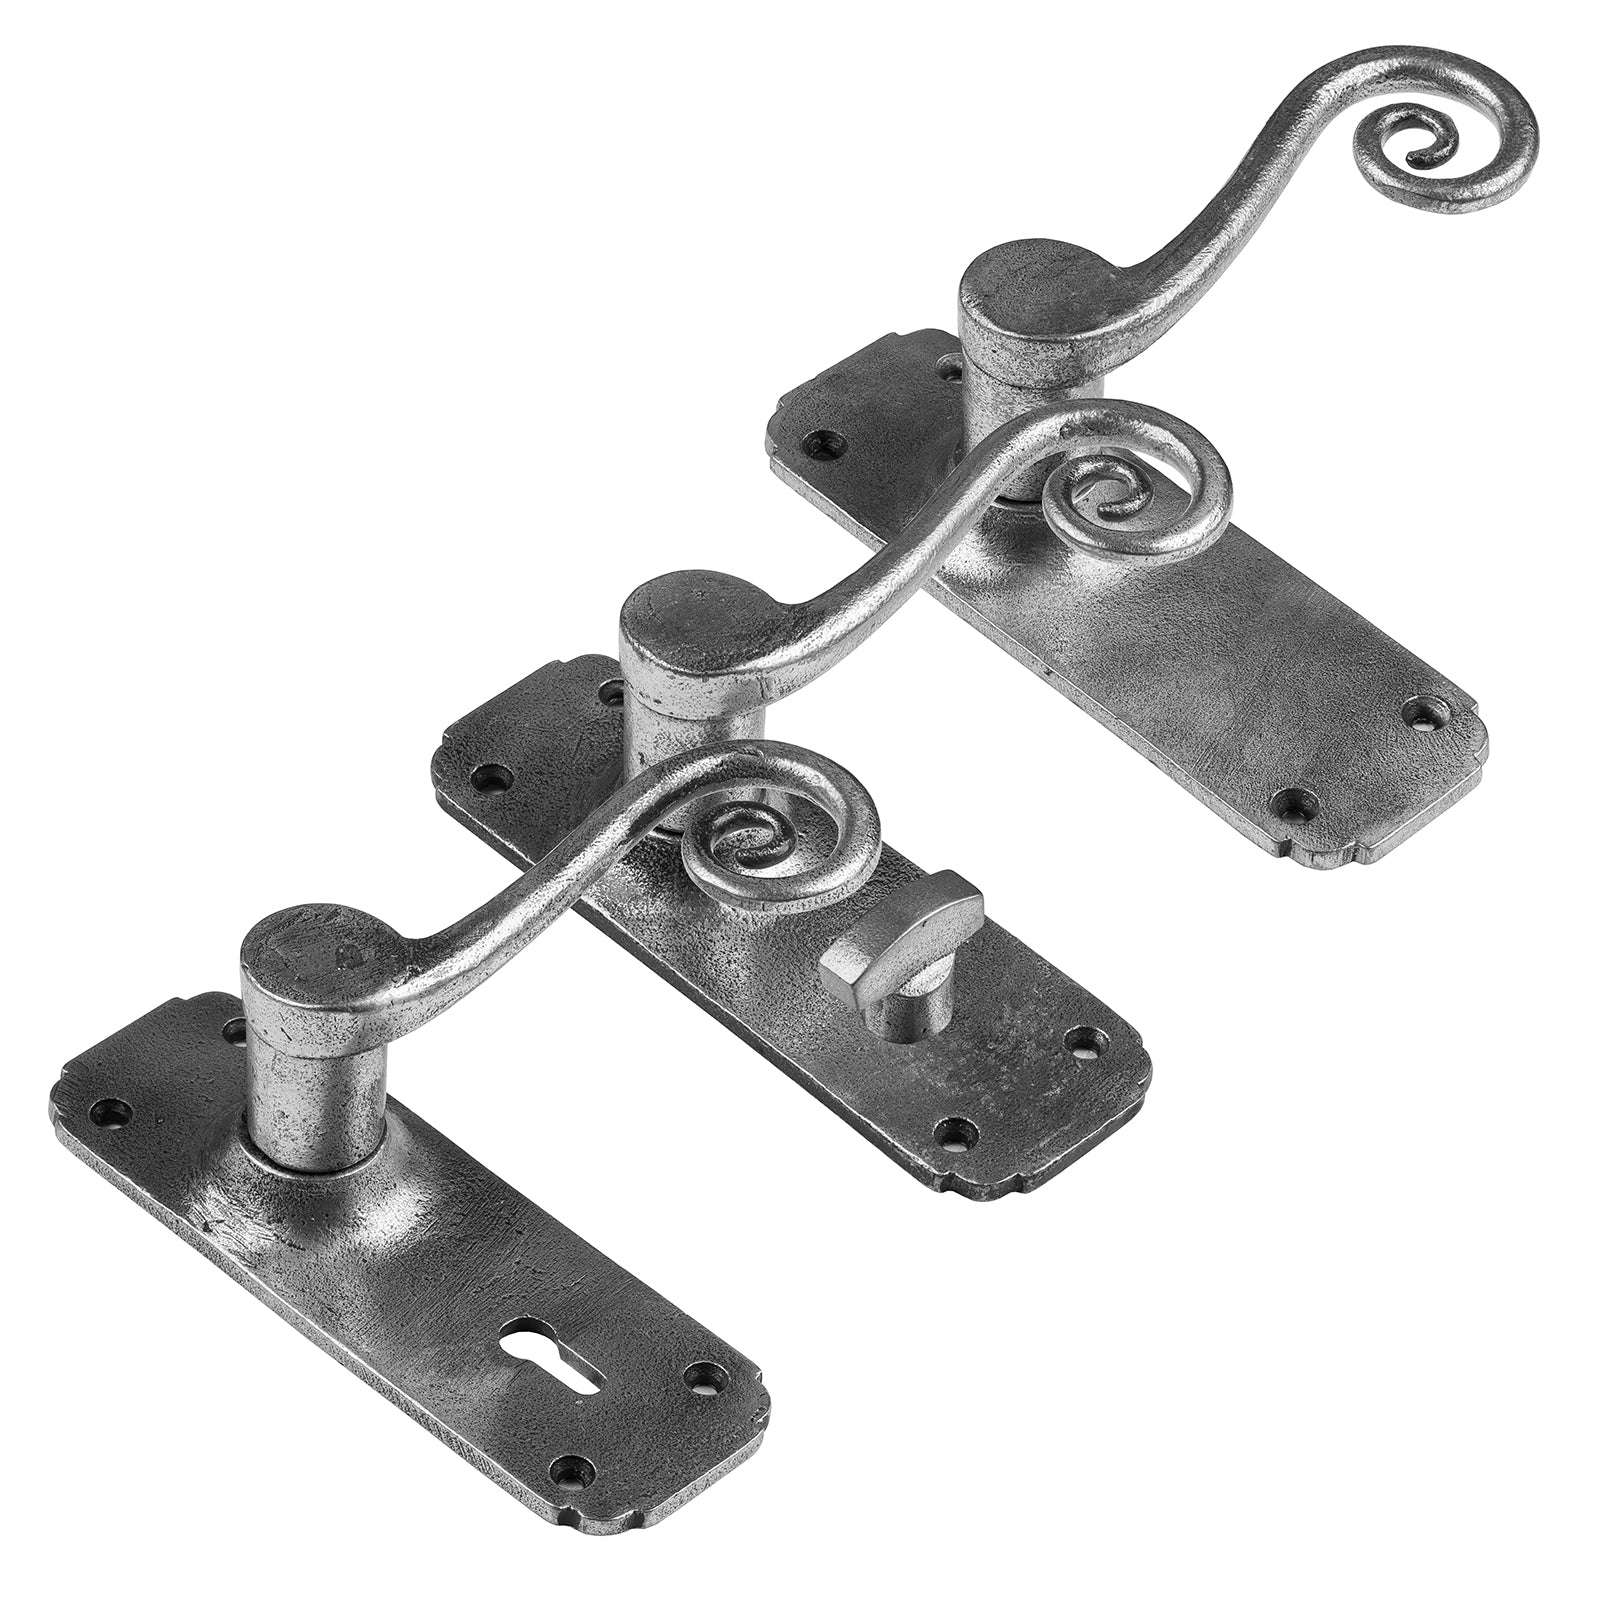 pewter door furniture, Monkey Tail Lever Handle Pewter Lock Latch Bathroom